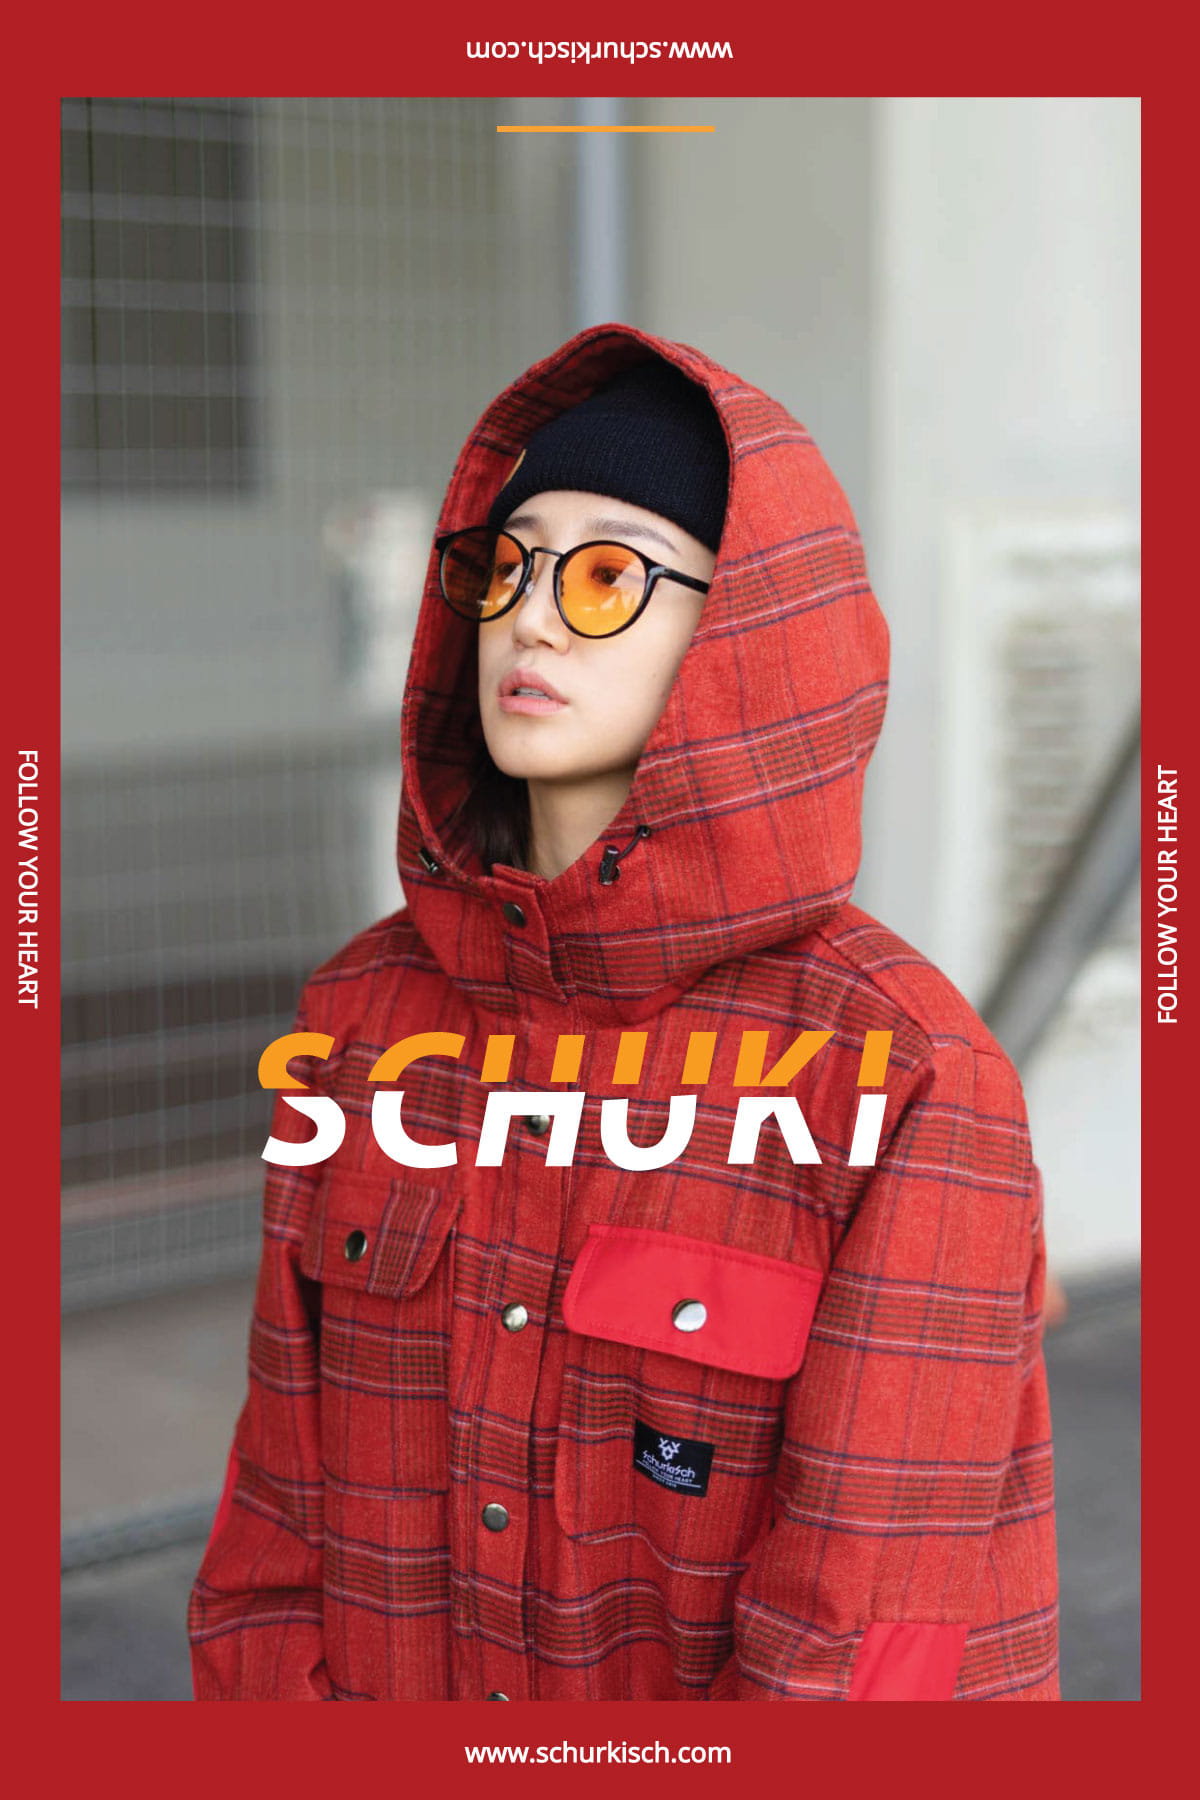 SCHUK Checked Shirt Jacket Red